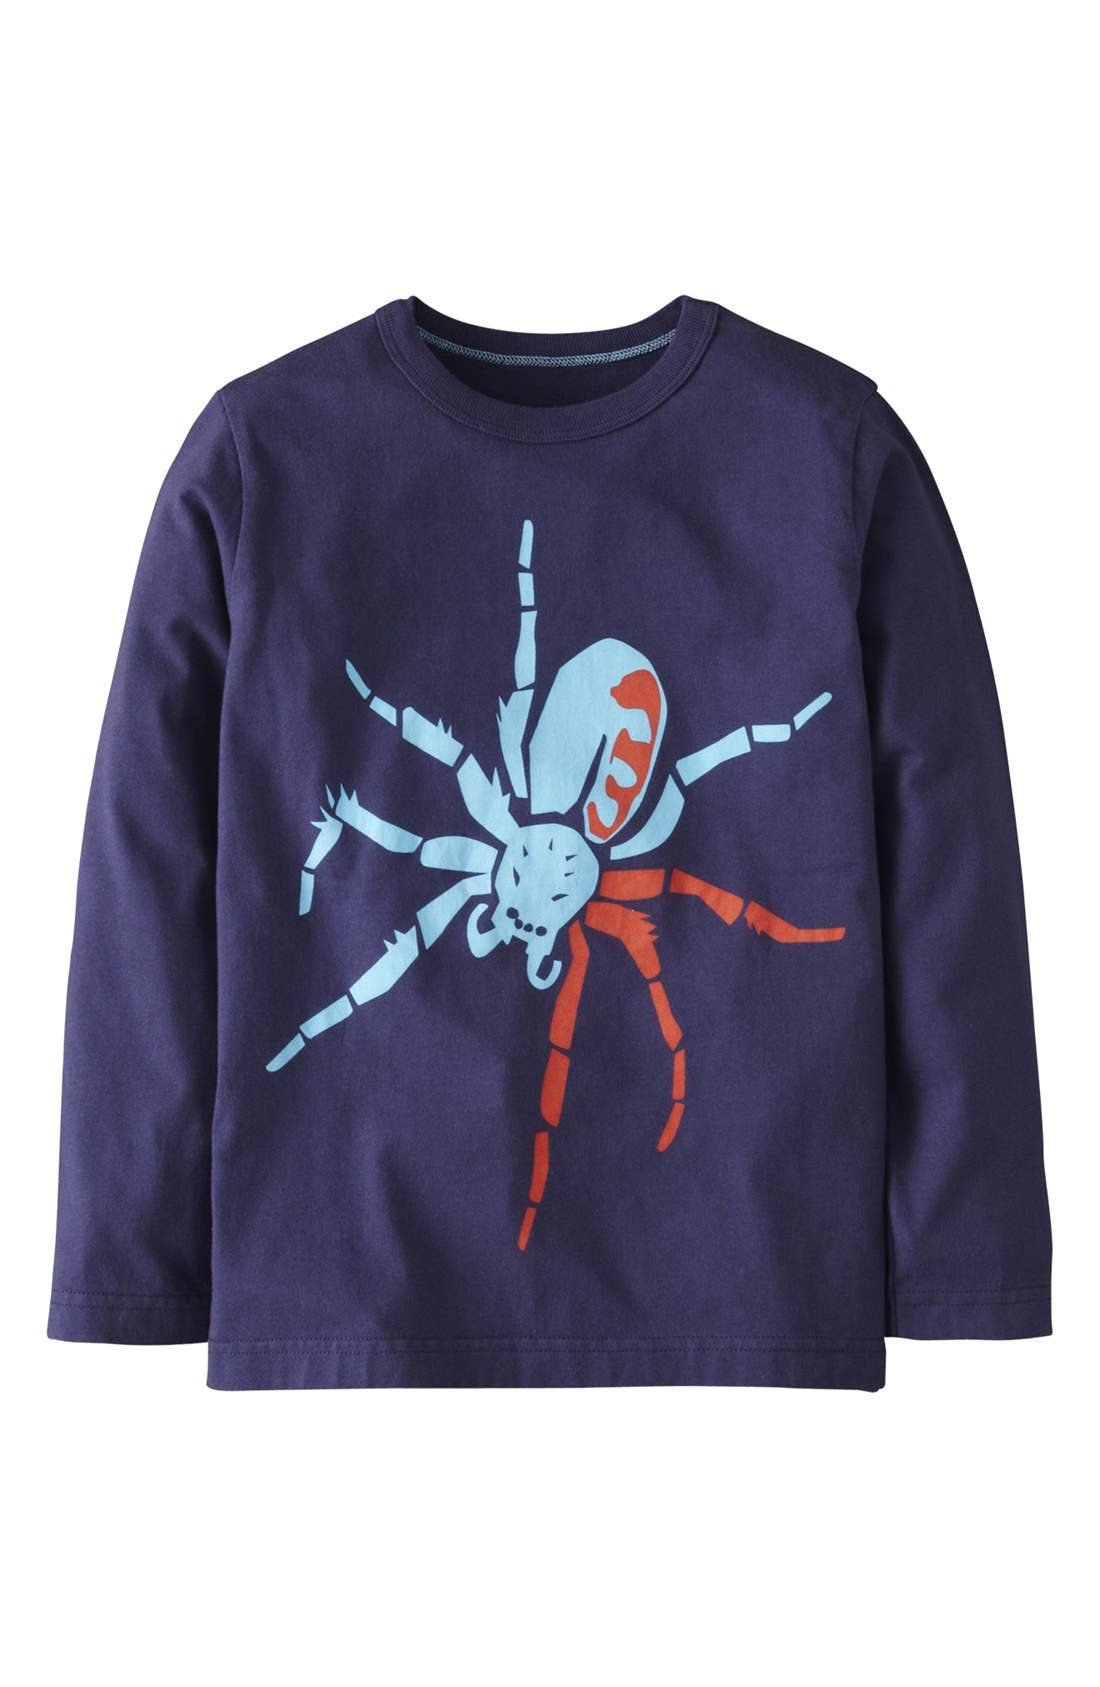 Alternate Image 1 Selected - Mini Boden 'Big Bugs' Long Sleeve T-Shirt (Toddler Boys)